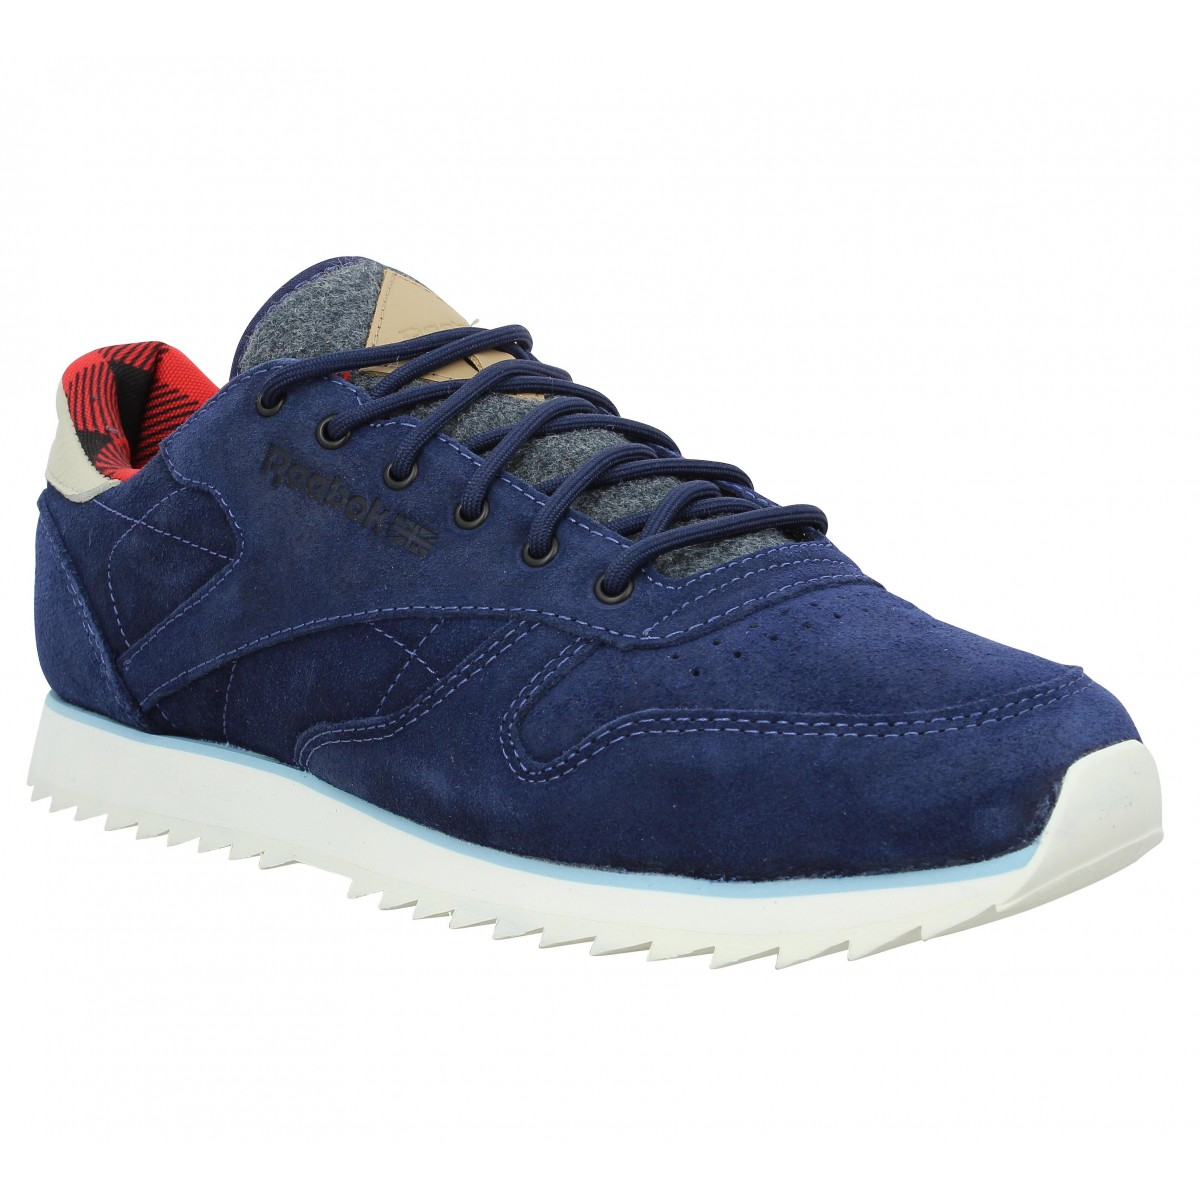 Baskets REEBOK Classic Leather Outdoor Marine